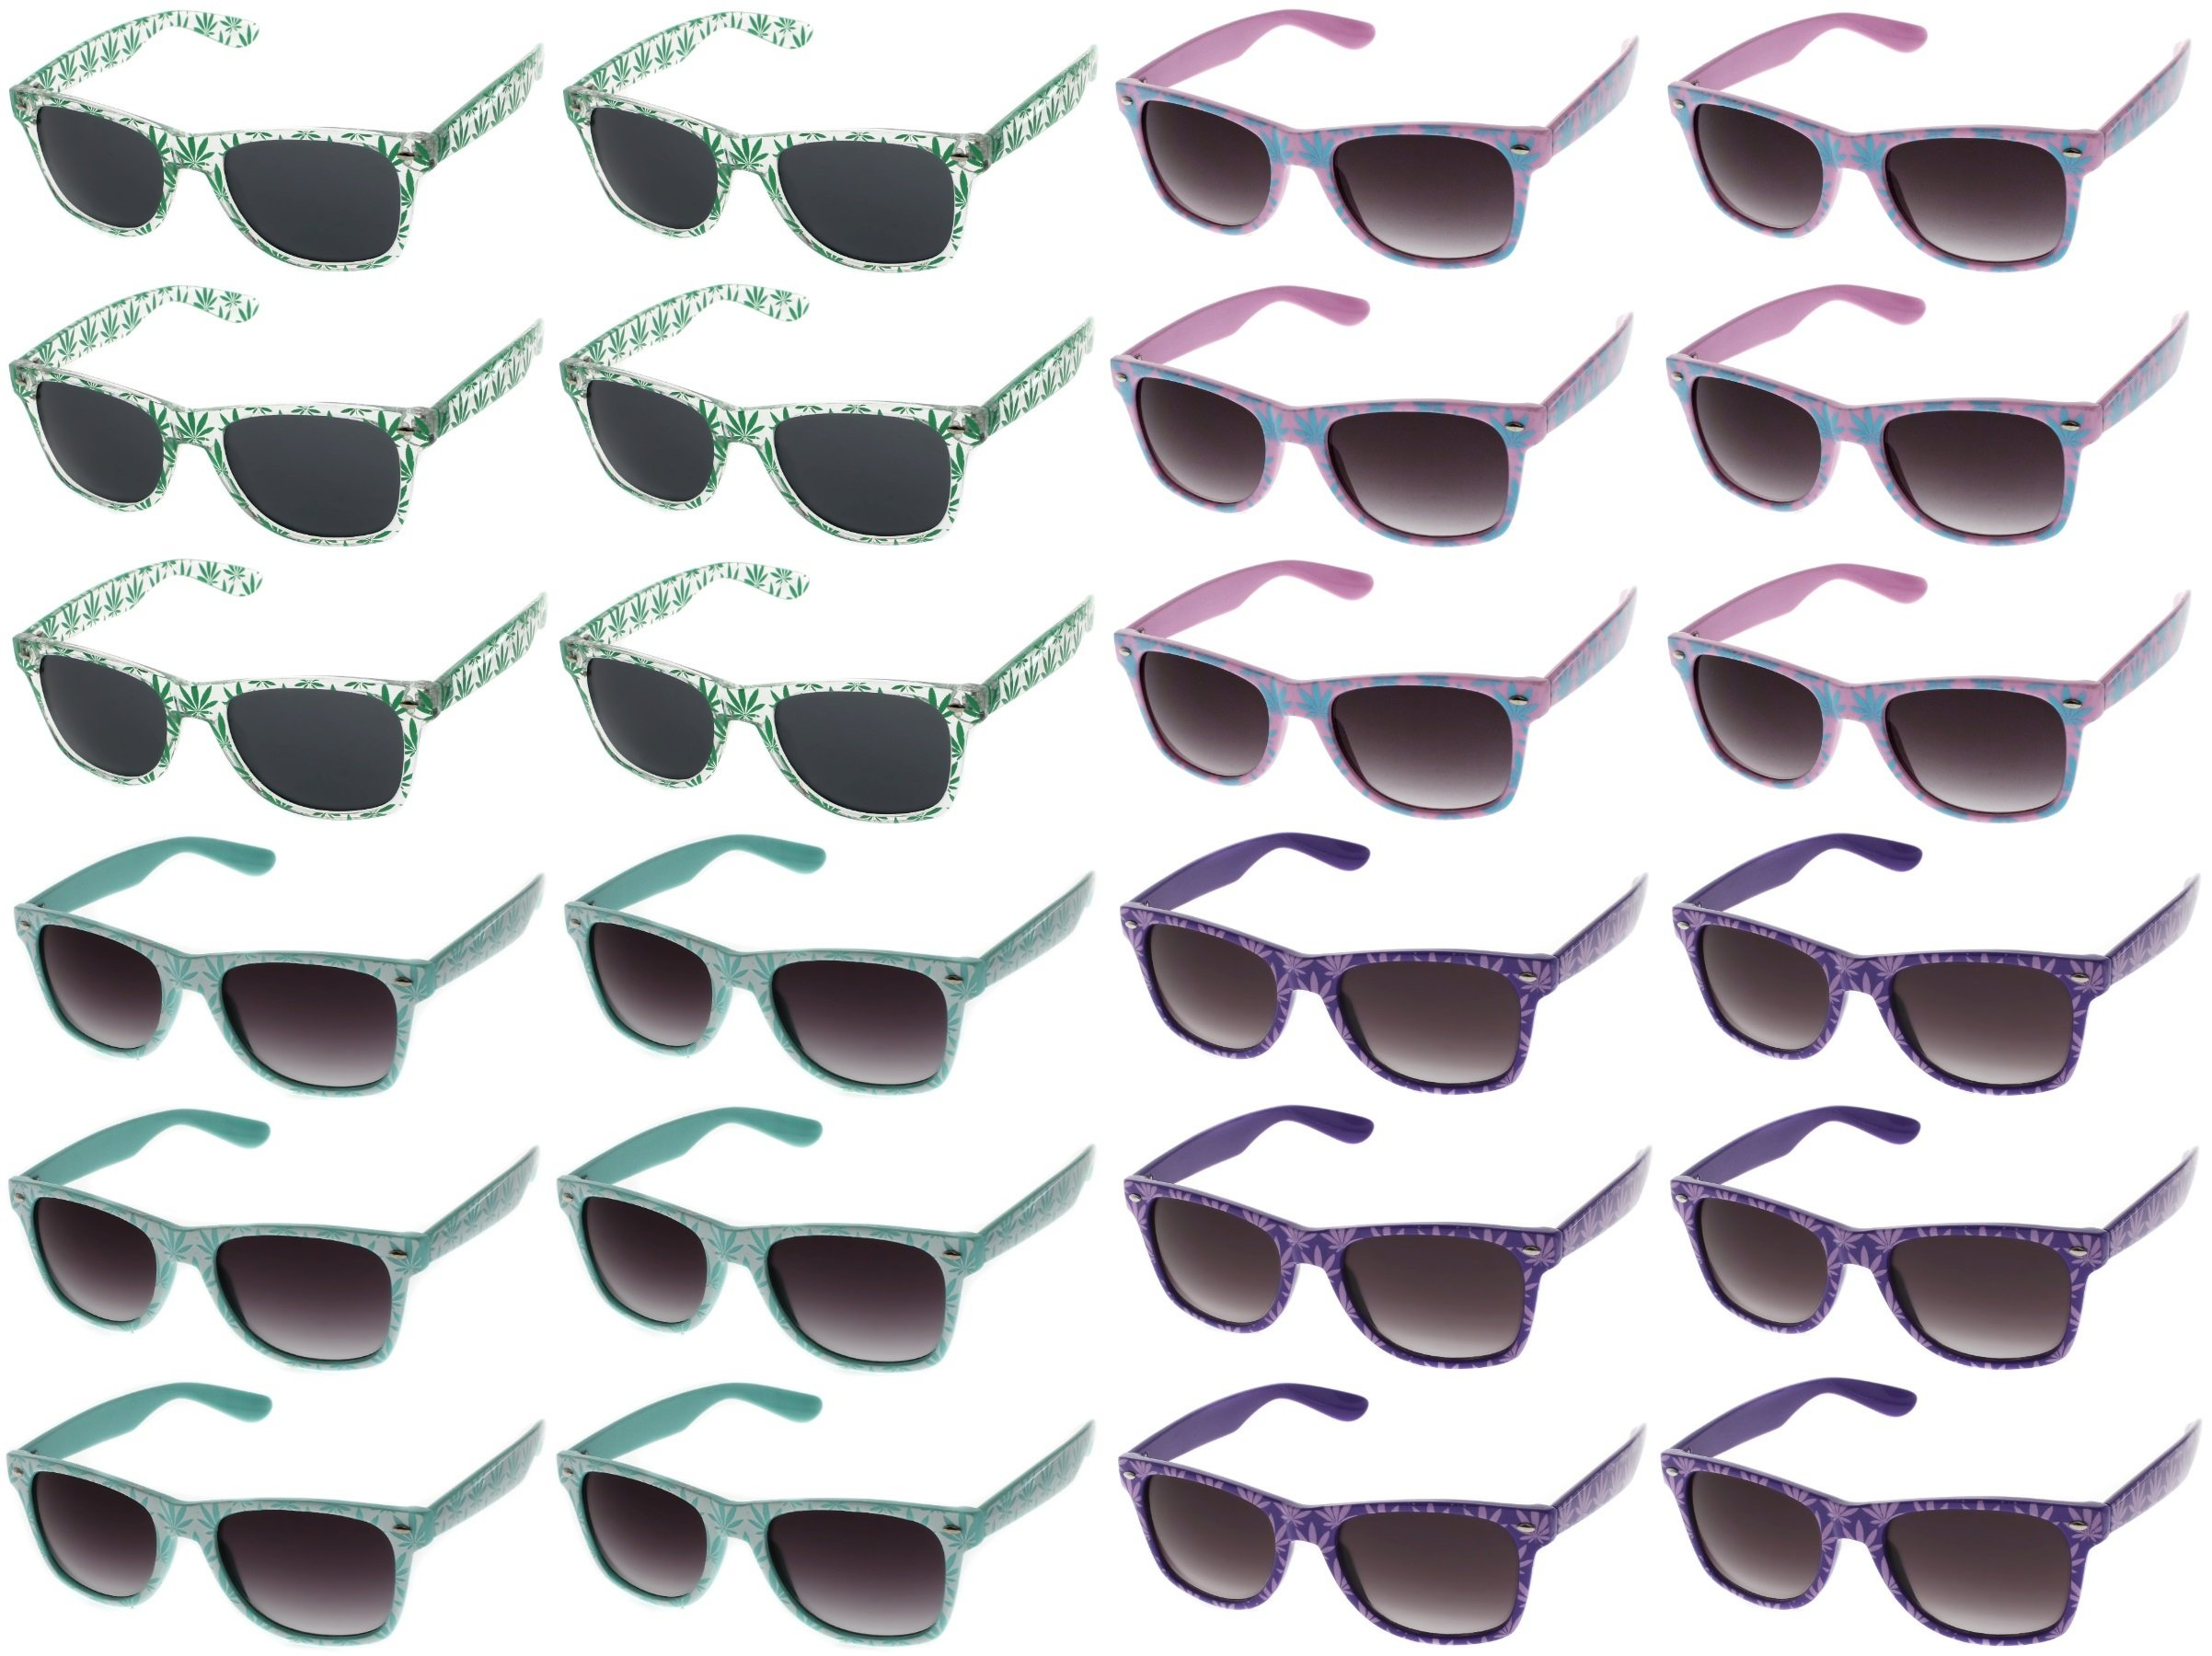 Assorted Metallic Gold Stylish Design Sunglasses Festival Party Shades 4 Pack